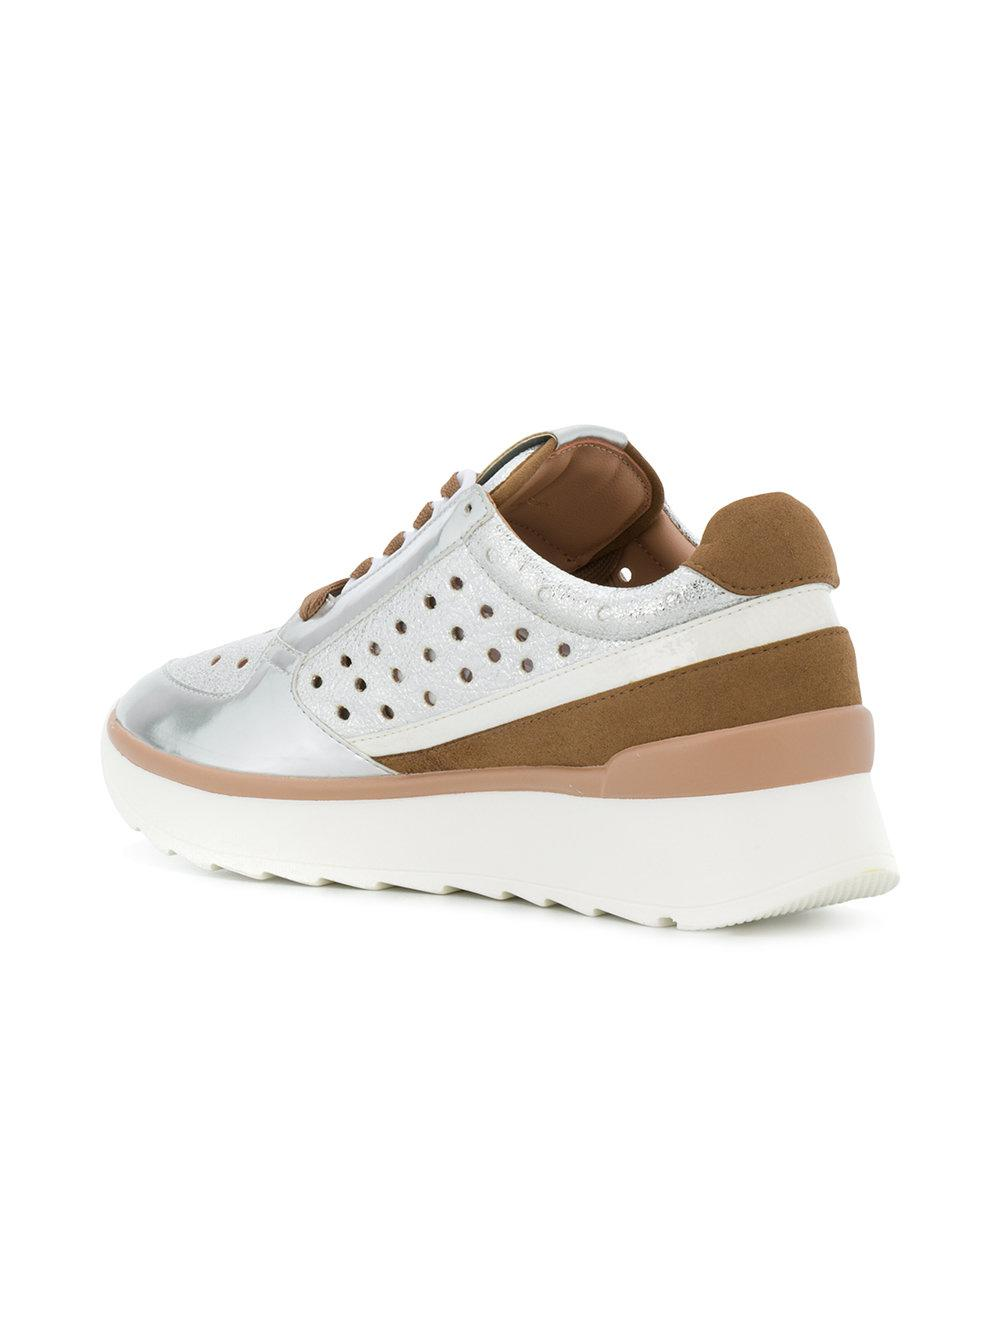 Twinset Twinset Twinset Chaussures De Plateforme M 3f4552